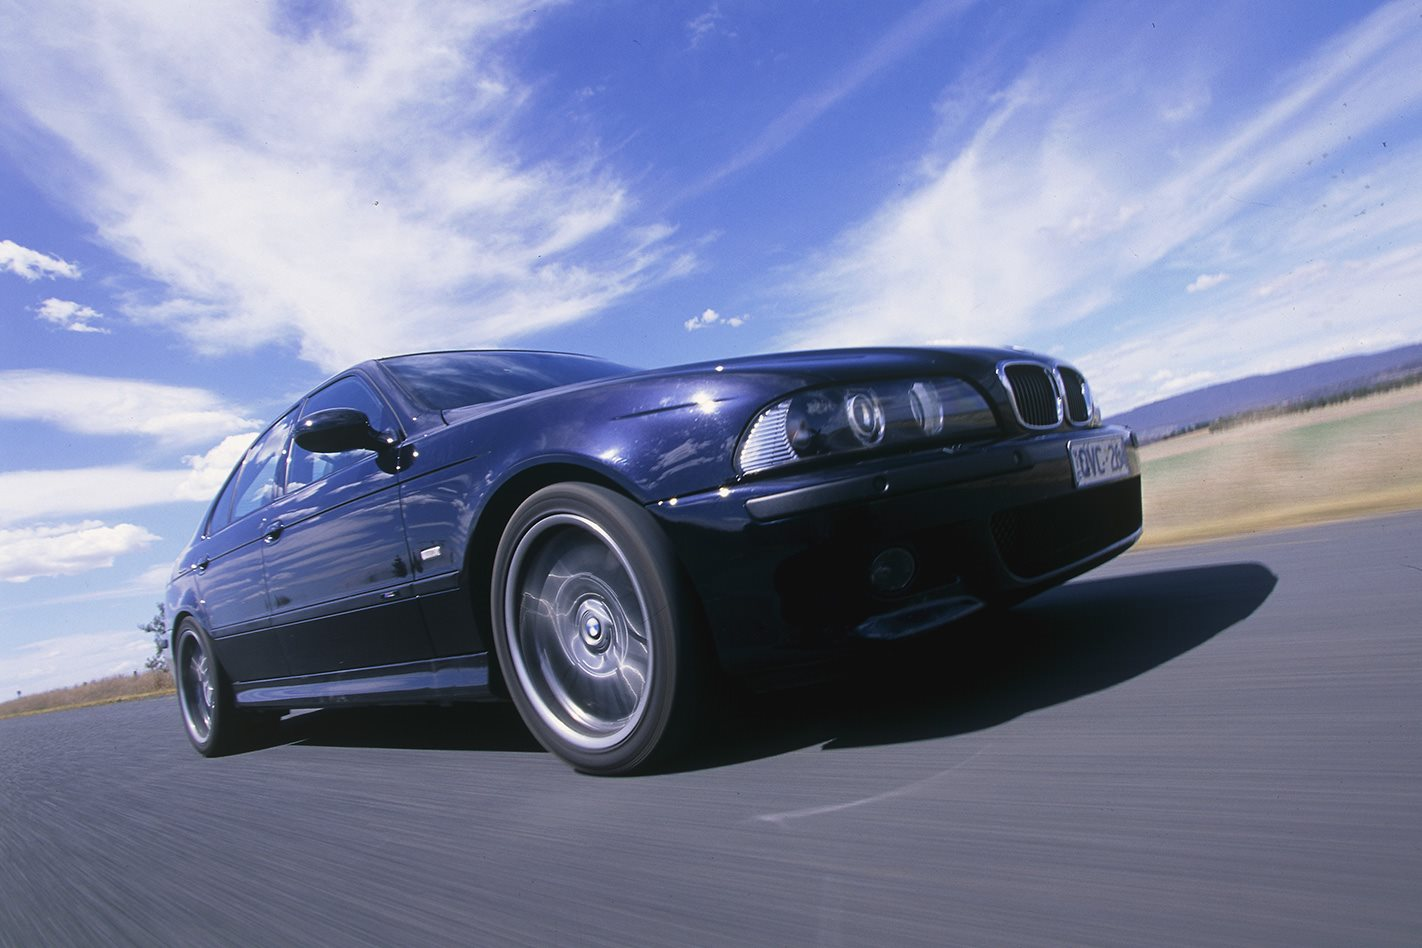 BMW E39 M5 Buying Guide